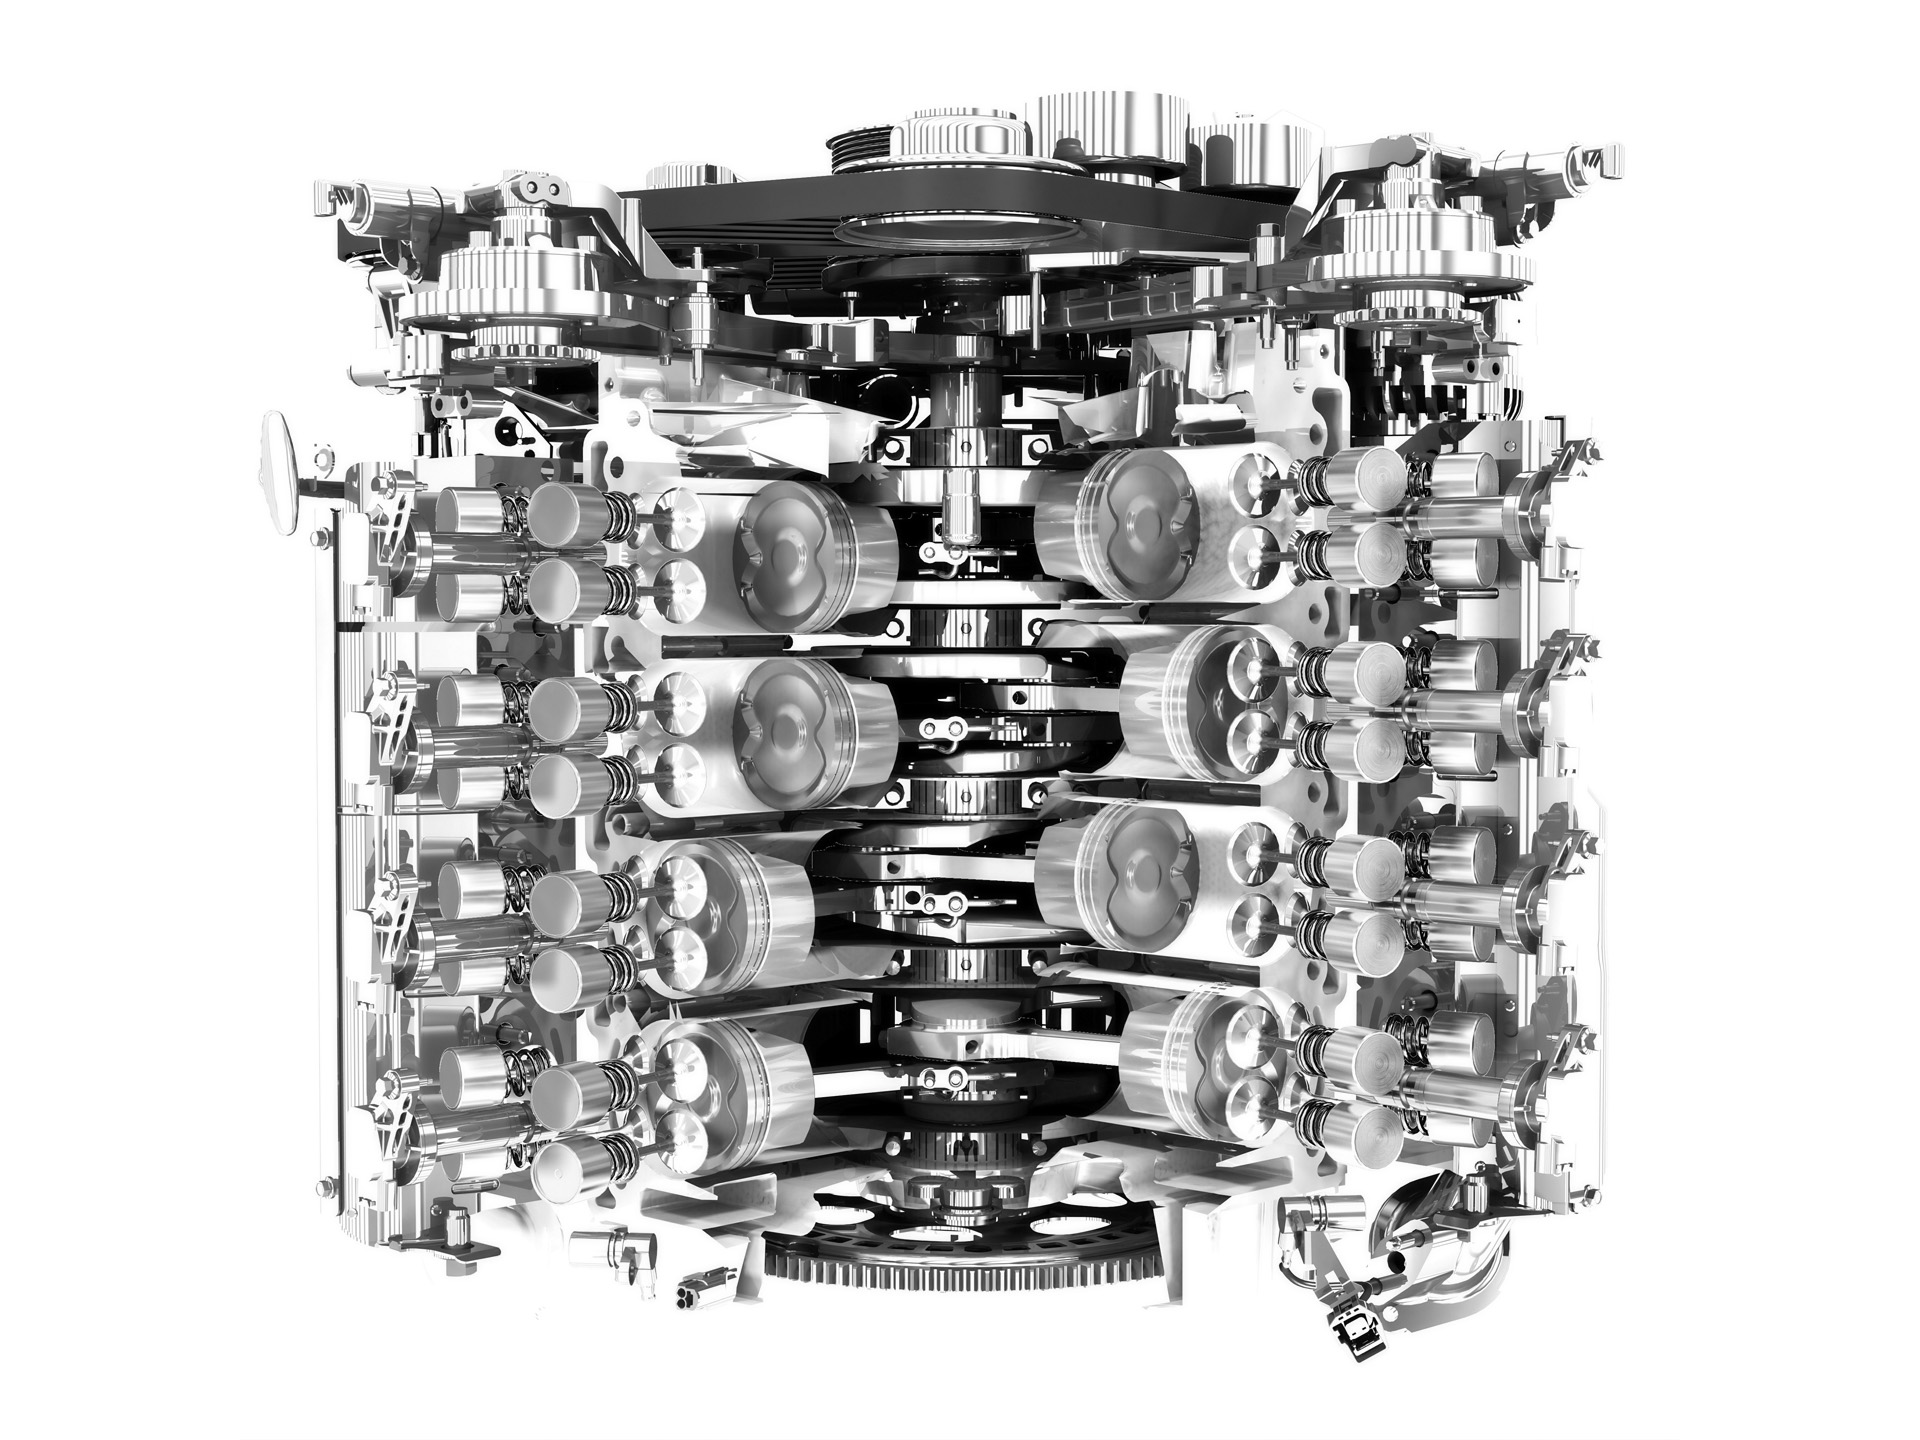 Sample P2230 Engine